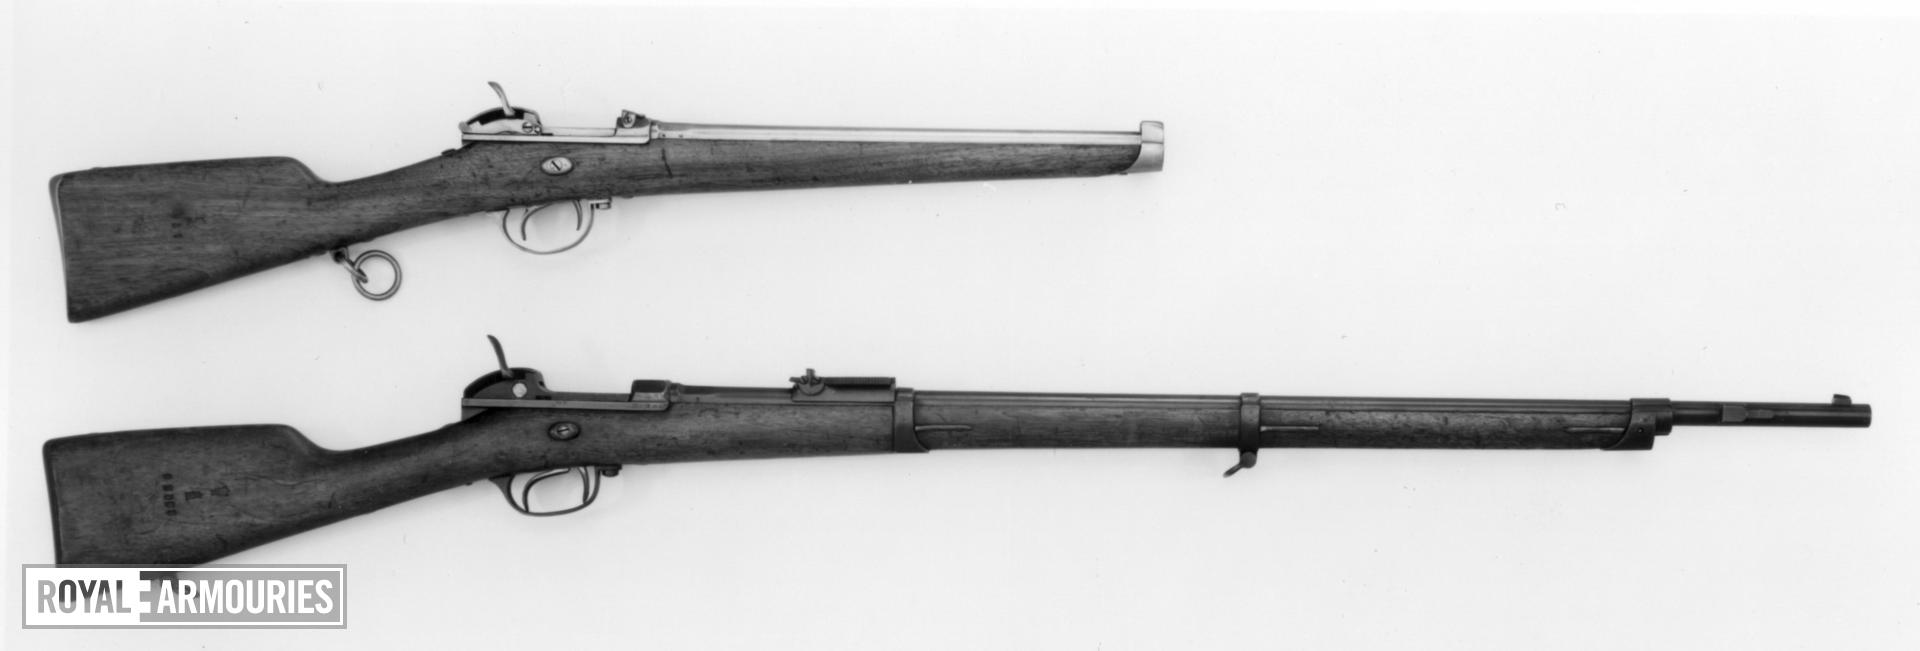 Centrefire breech-loading military carbine - Model 1869